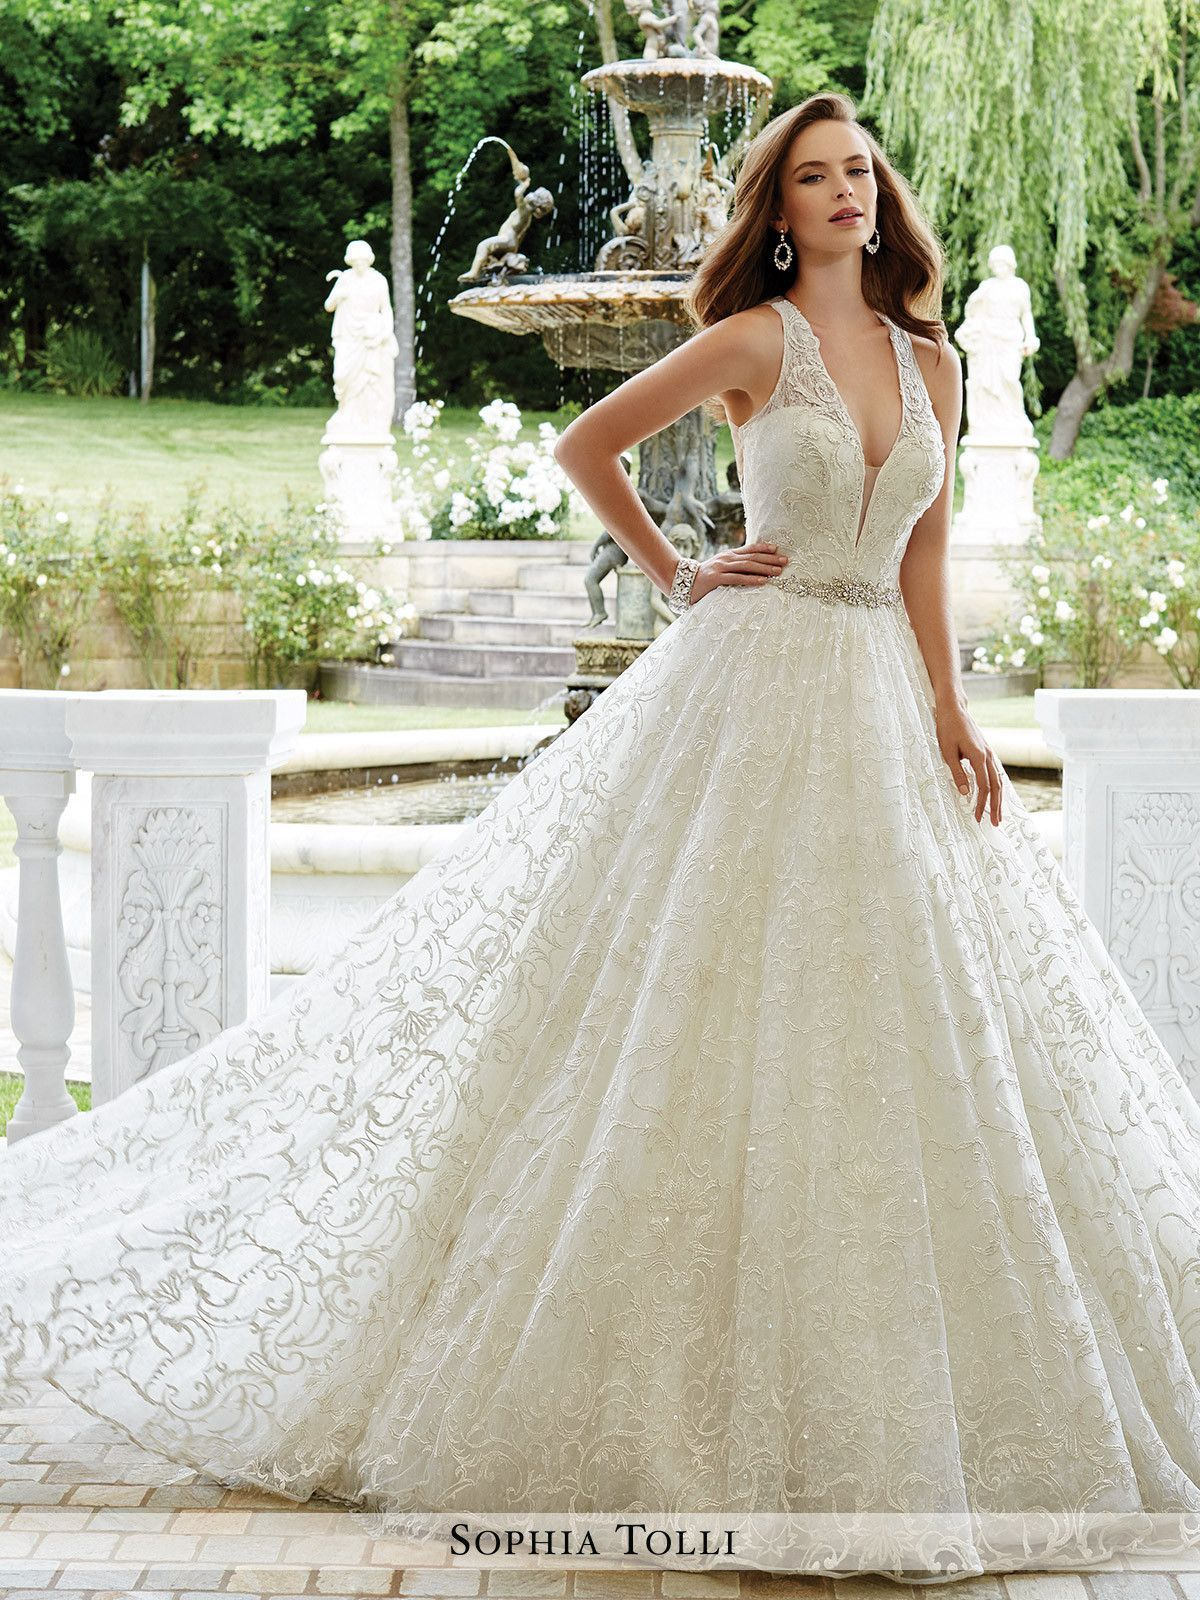 Sophia Tolli - Firenze - Y21675 - All Dressed Up, Bridal Gown ...